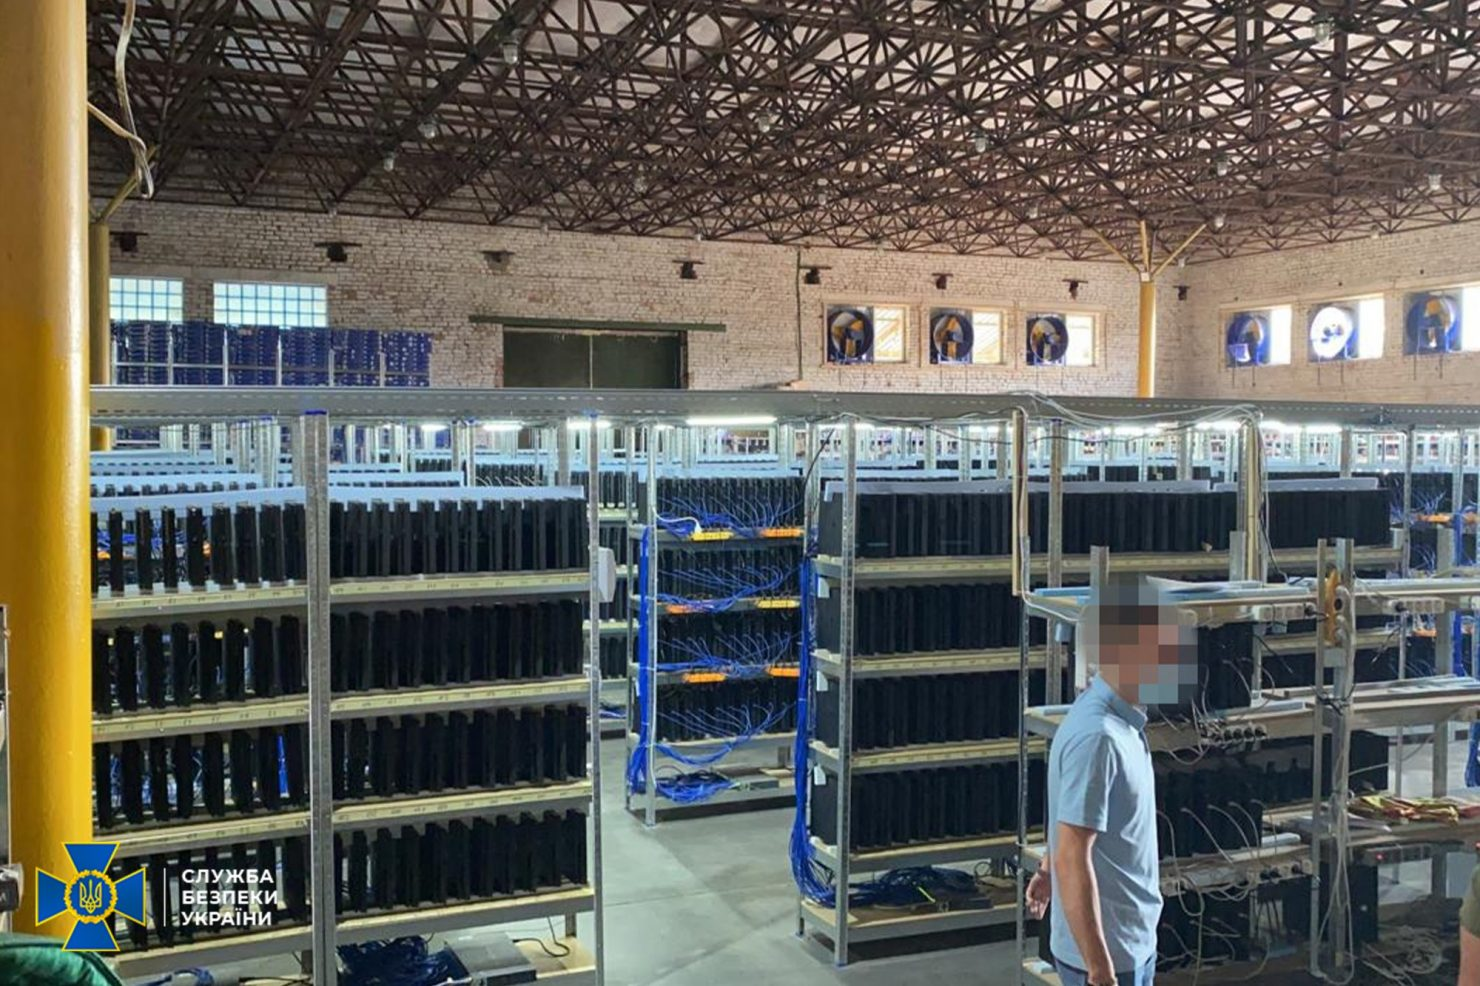 the-3,800-playstation-4-consoles-were-actually-used-as-fifa-bots,-not-as-cryptocurrency-mining-systems